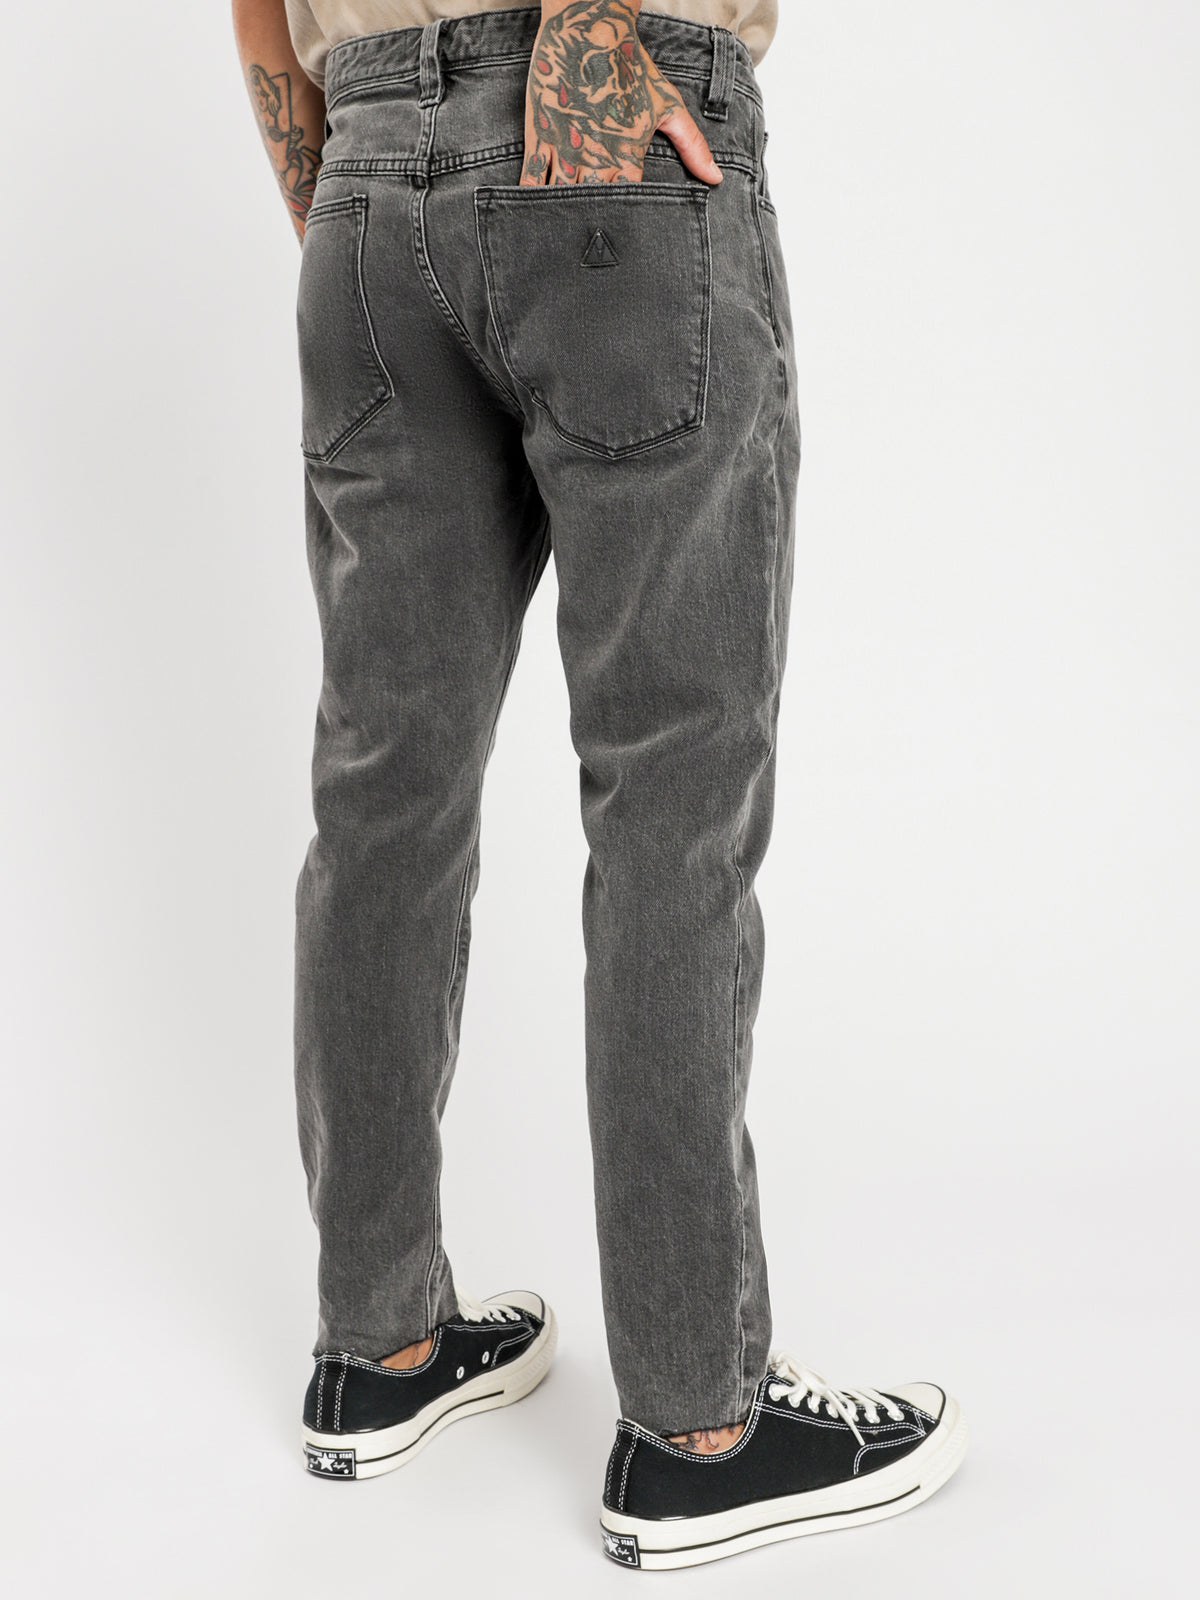 A Dropped Slim Turn Up Jeans in Phantom Black Denim